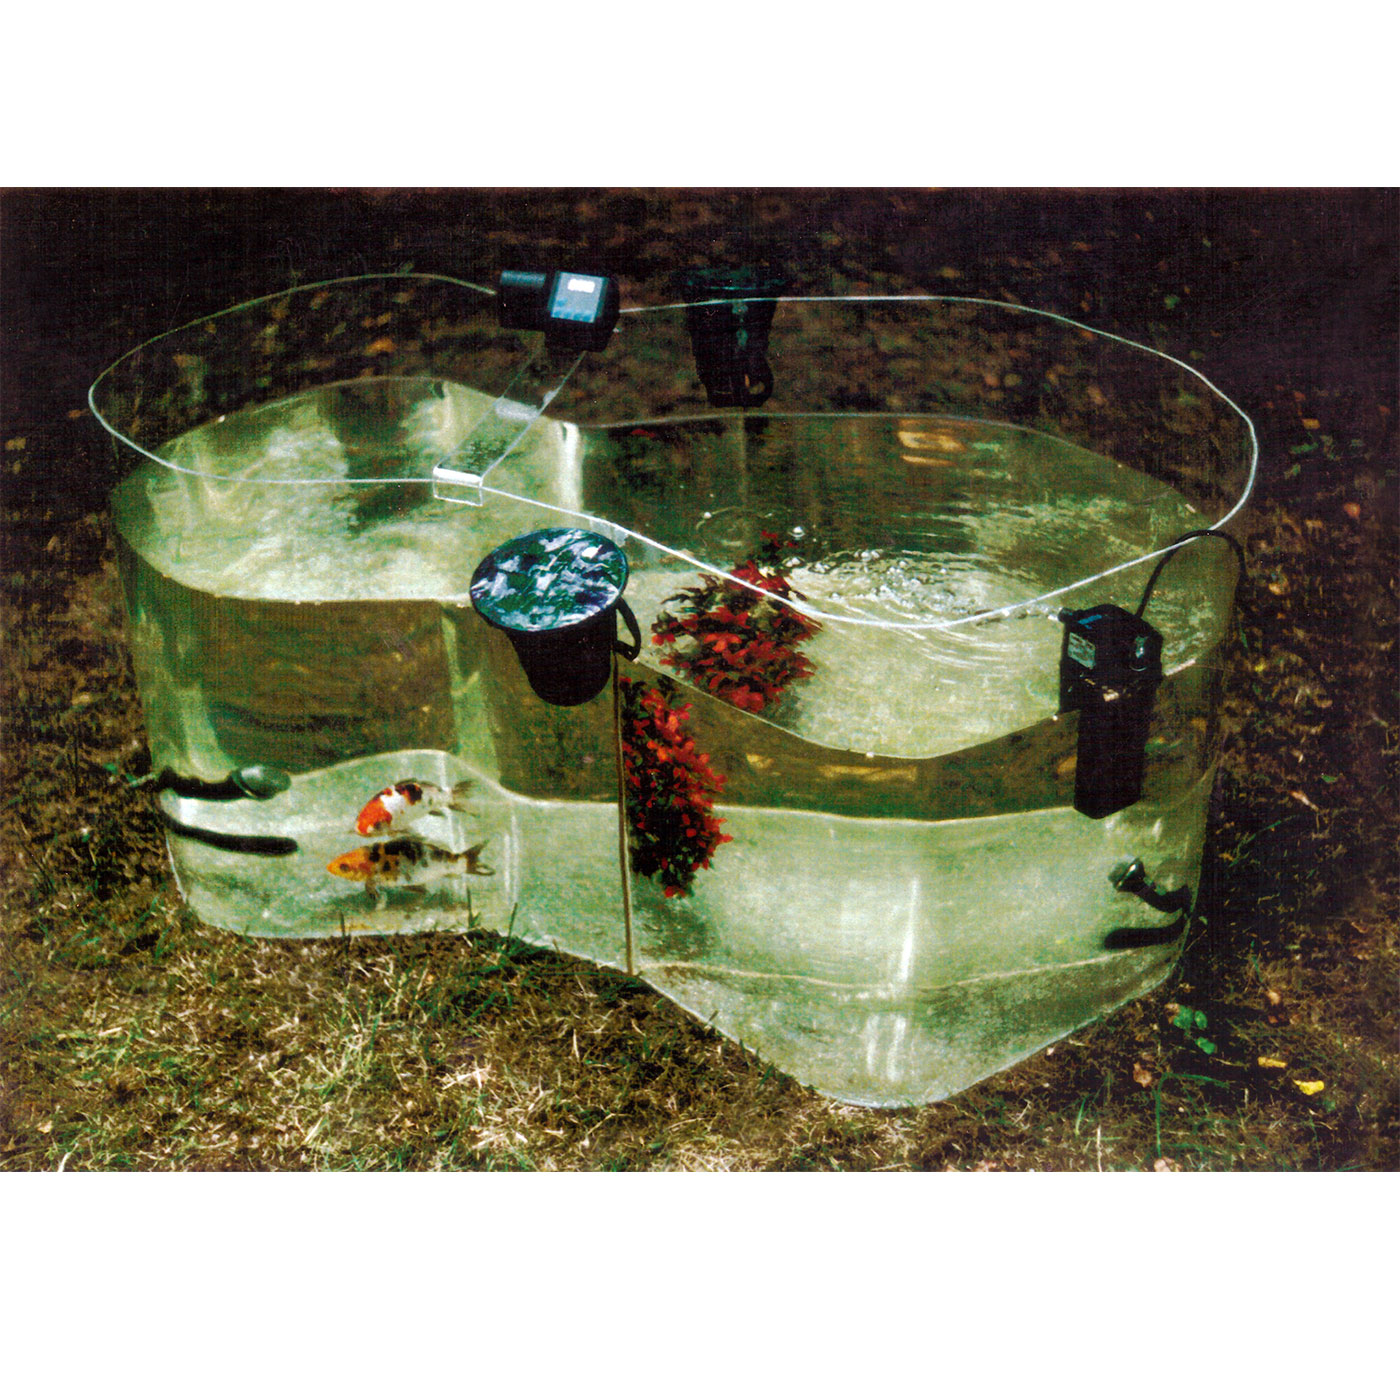 RUNNING GAG, © 1997, acrylic perspex, 2 microfones, 2 speakers, plastic flowers, 2 fishes (kois), water, 120 x 60 x 50 cm